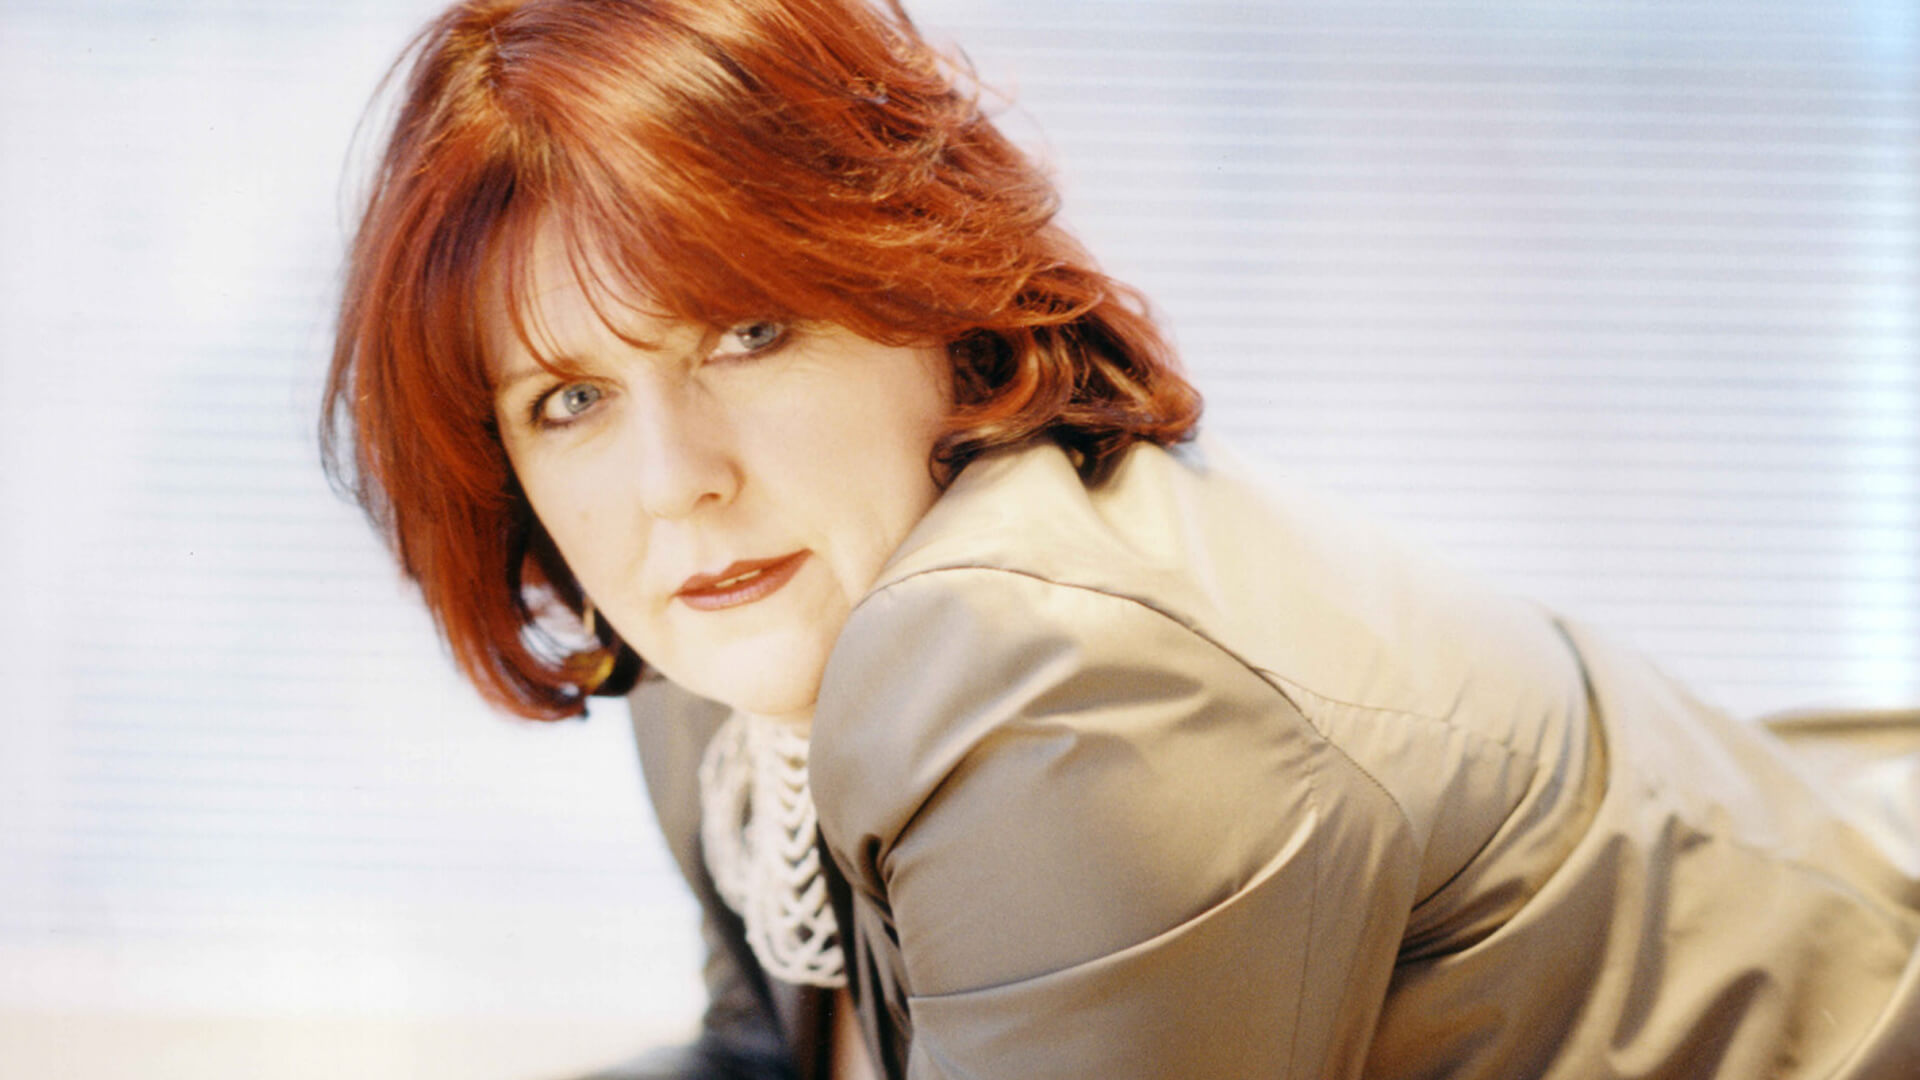 Maggie Reilly